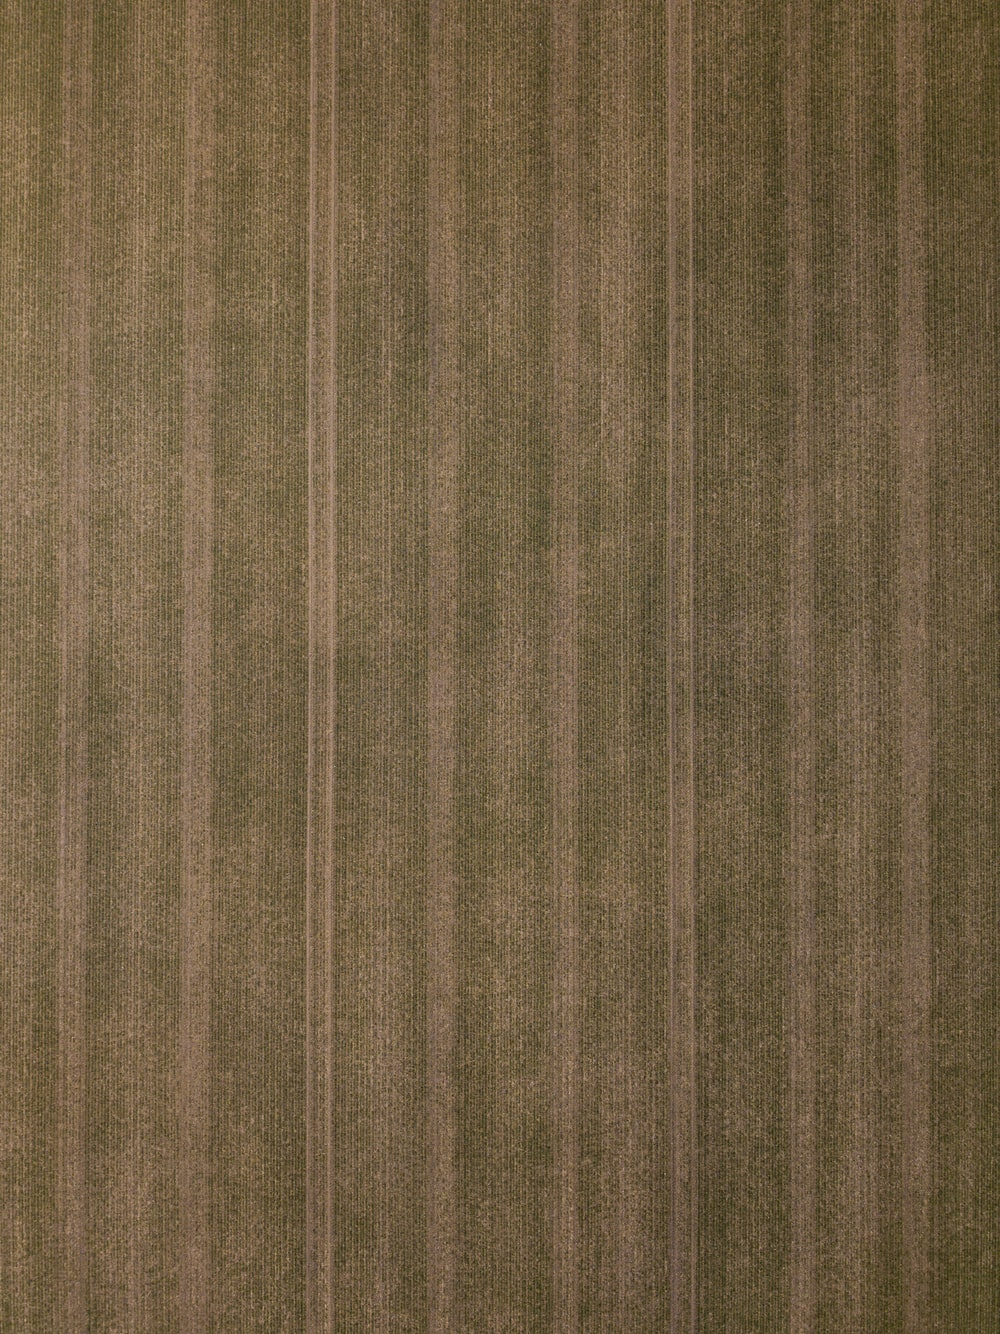 brown and gray striped textile